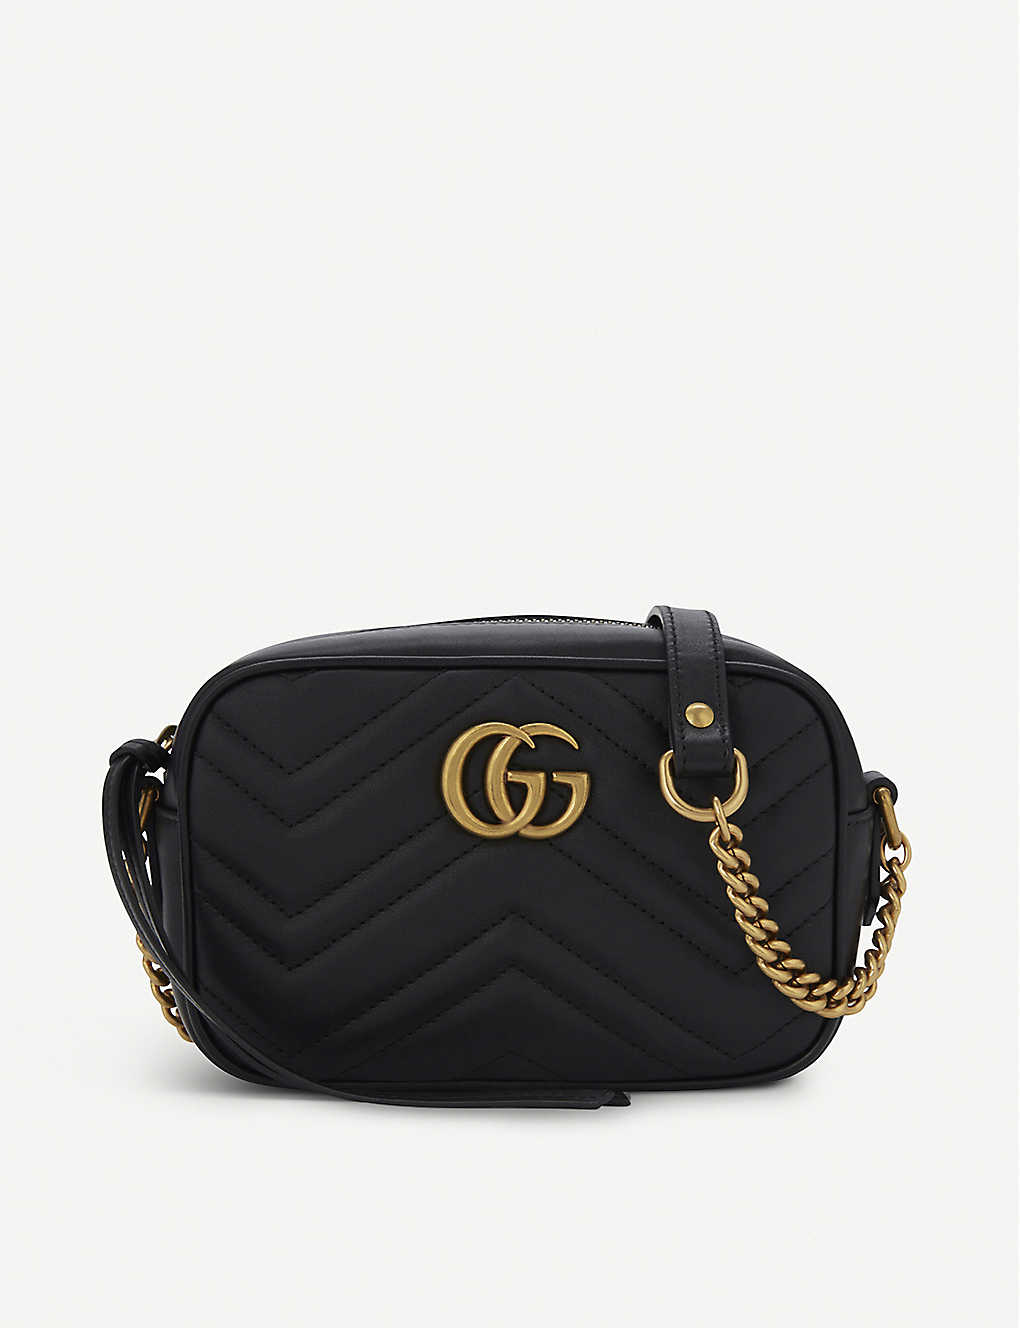 0478fcf7496 GUCCI - GG Marmont mini quilted leather cross-body bag